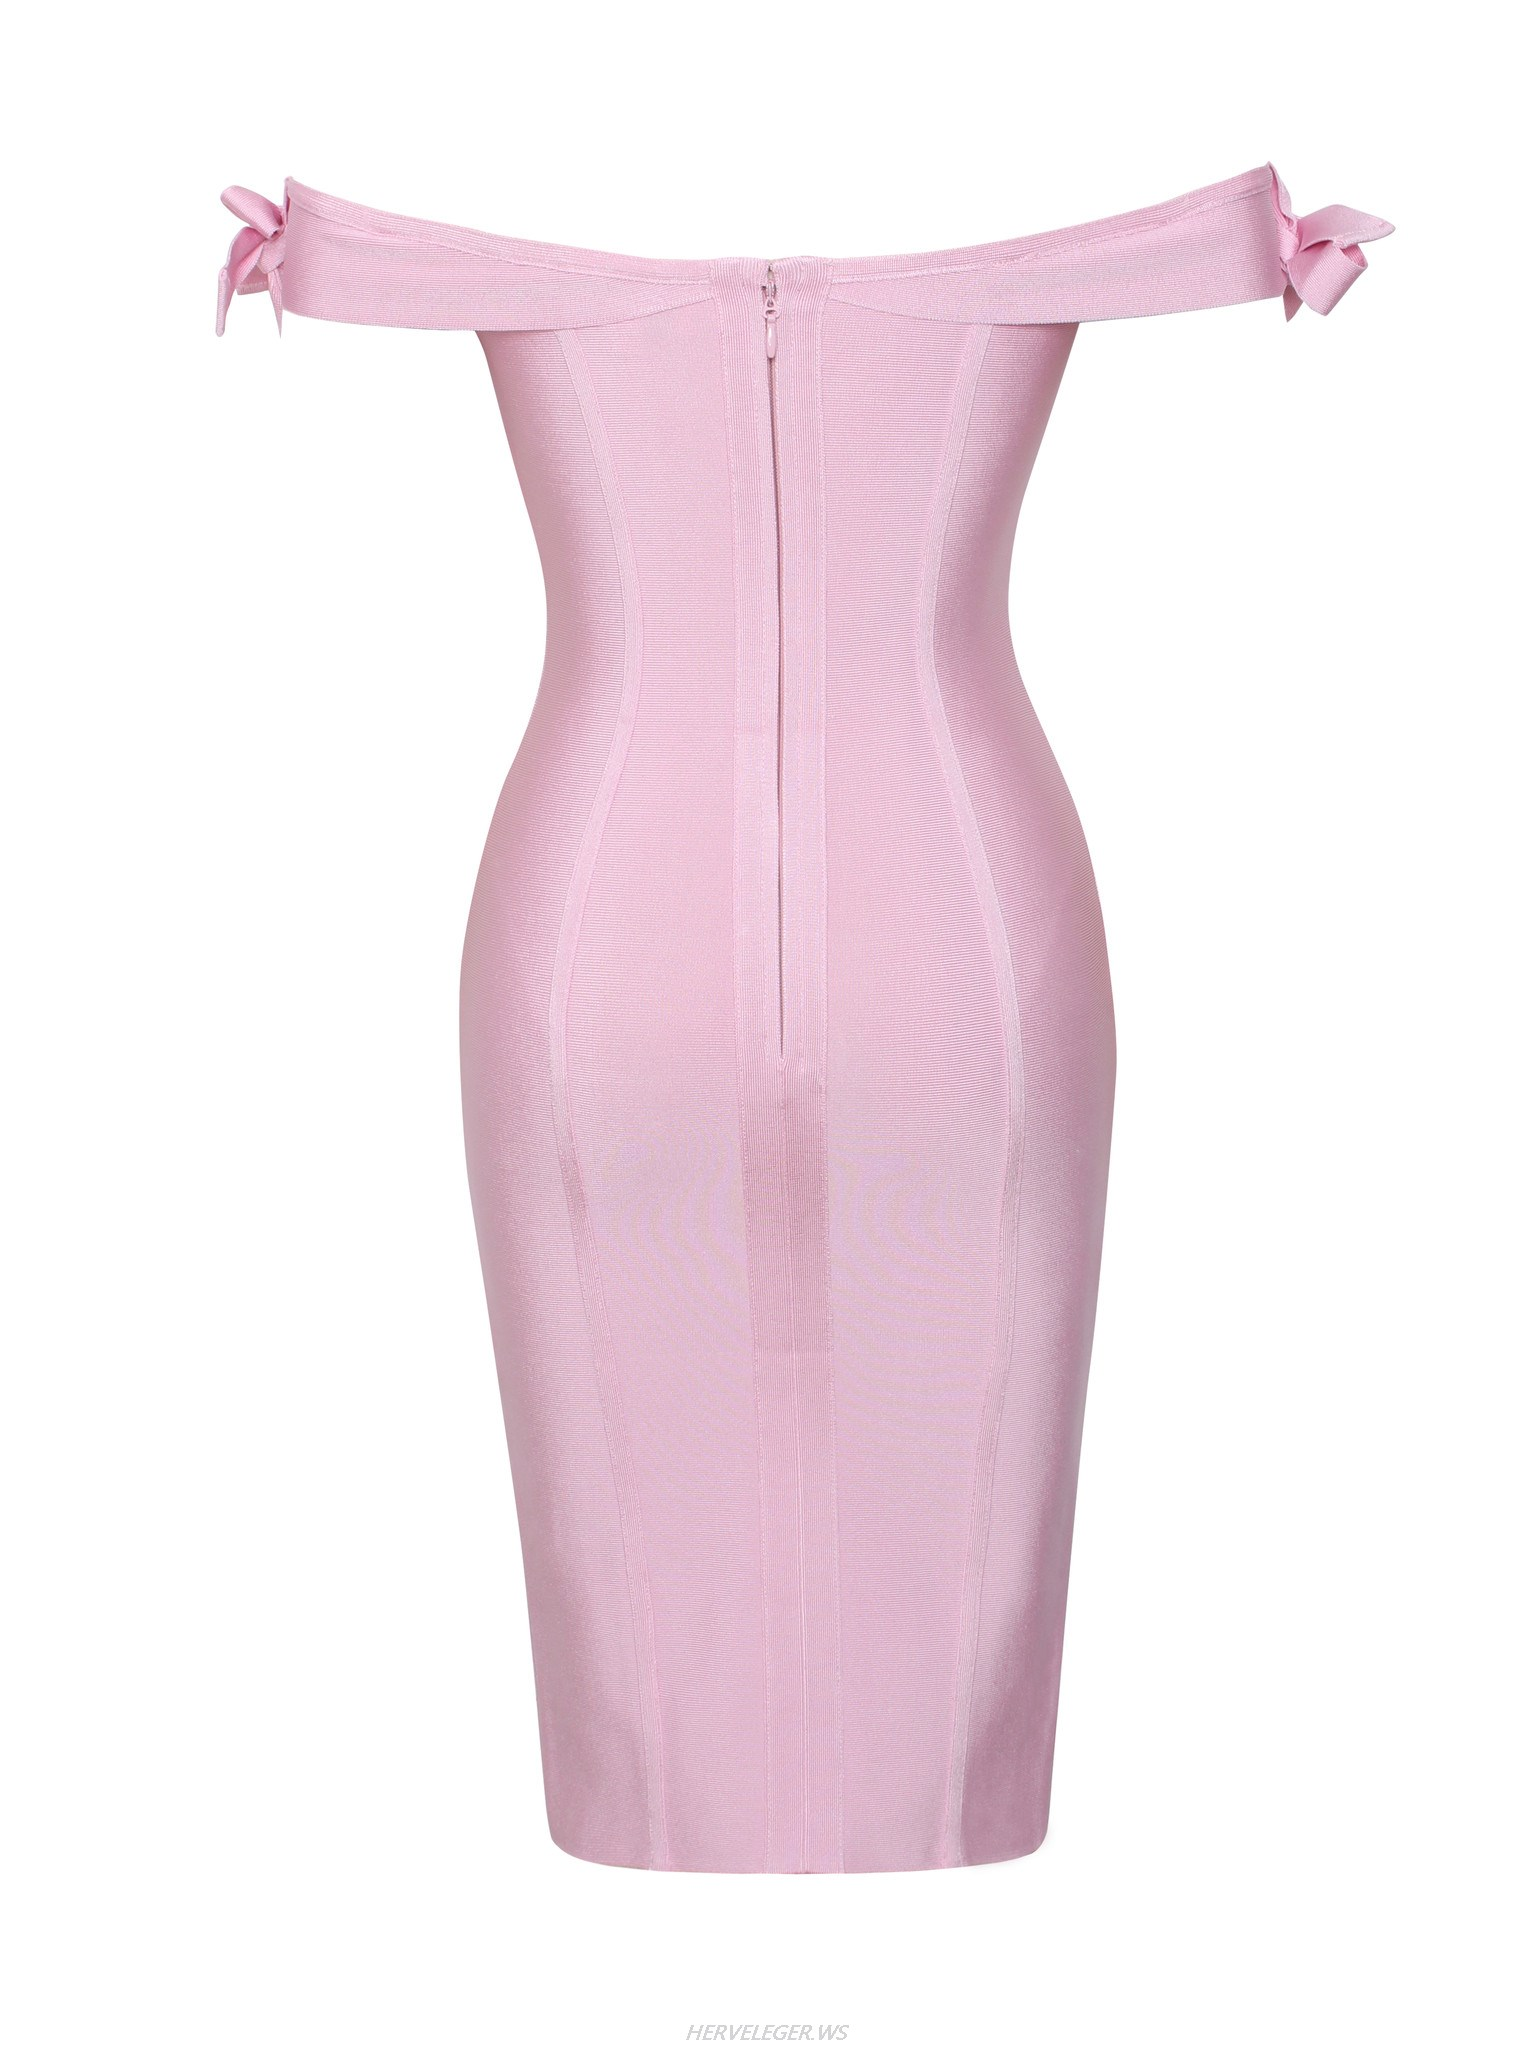 Herve Leger Pink Strapless Off The Shoulder Dress